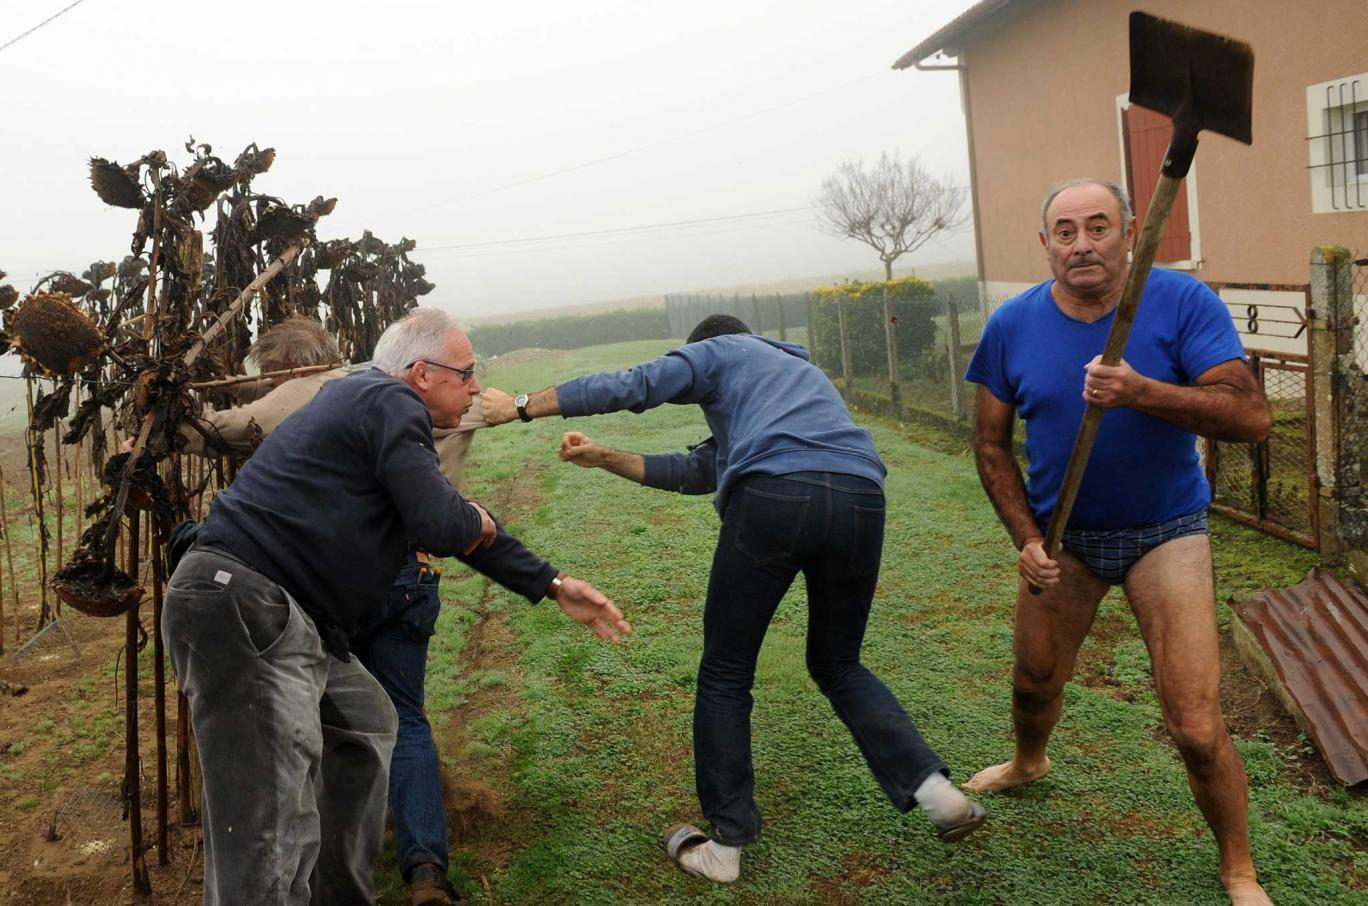 Man In Pants Who Attacked Journalists With Shovel Gets Photoshop Treatment UNILAD getty36399